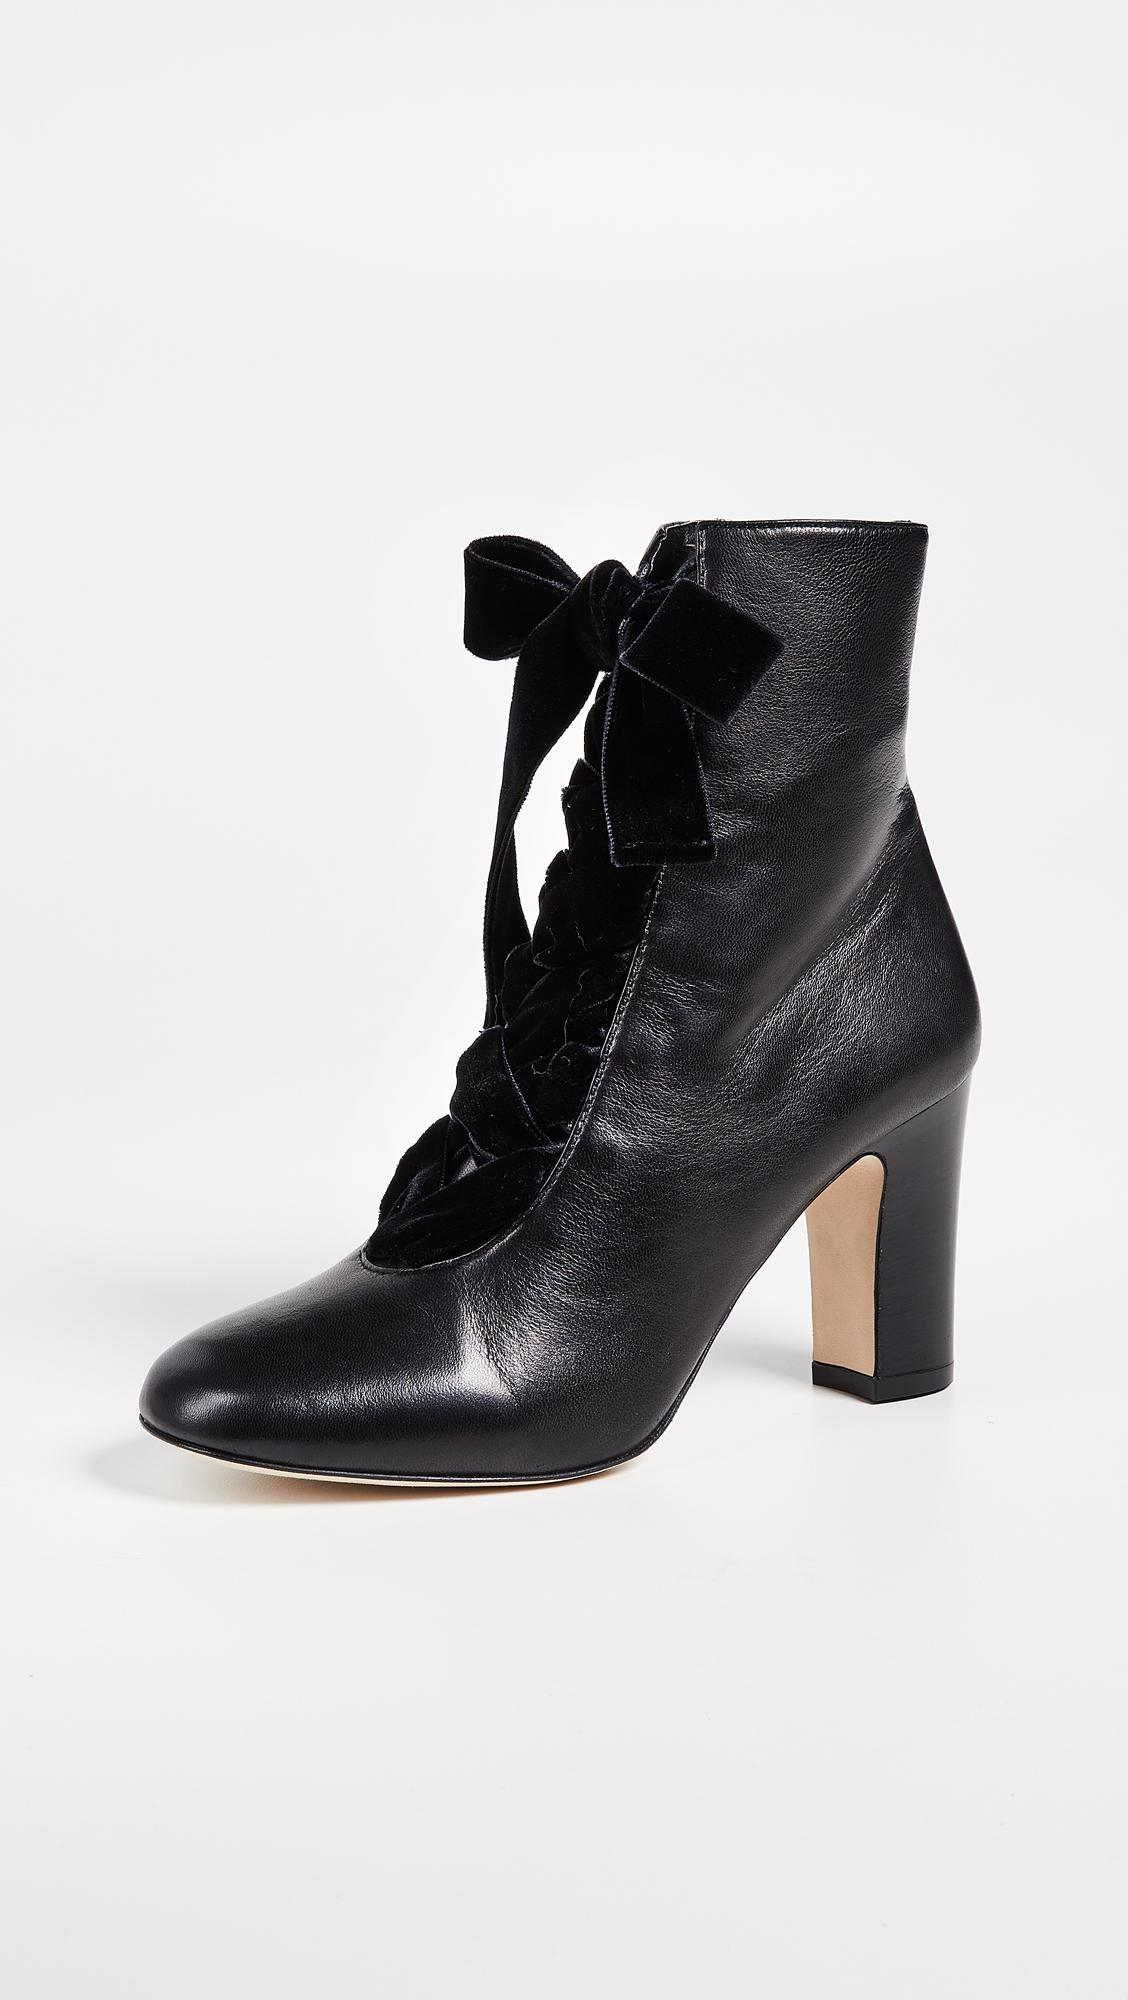 4315cf0e1dd L.K.Bennett Maxine Lace Up Ankle Boots in Black - Lyst